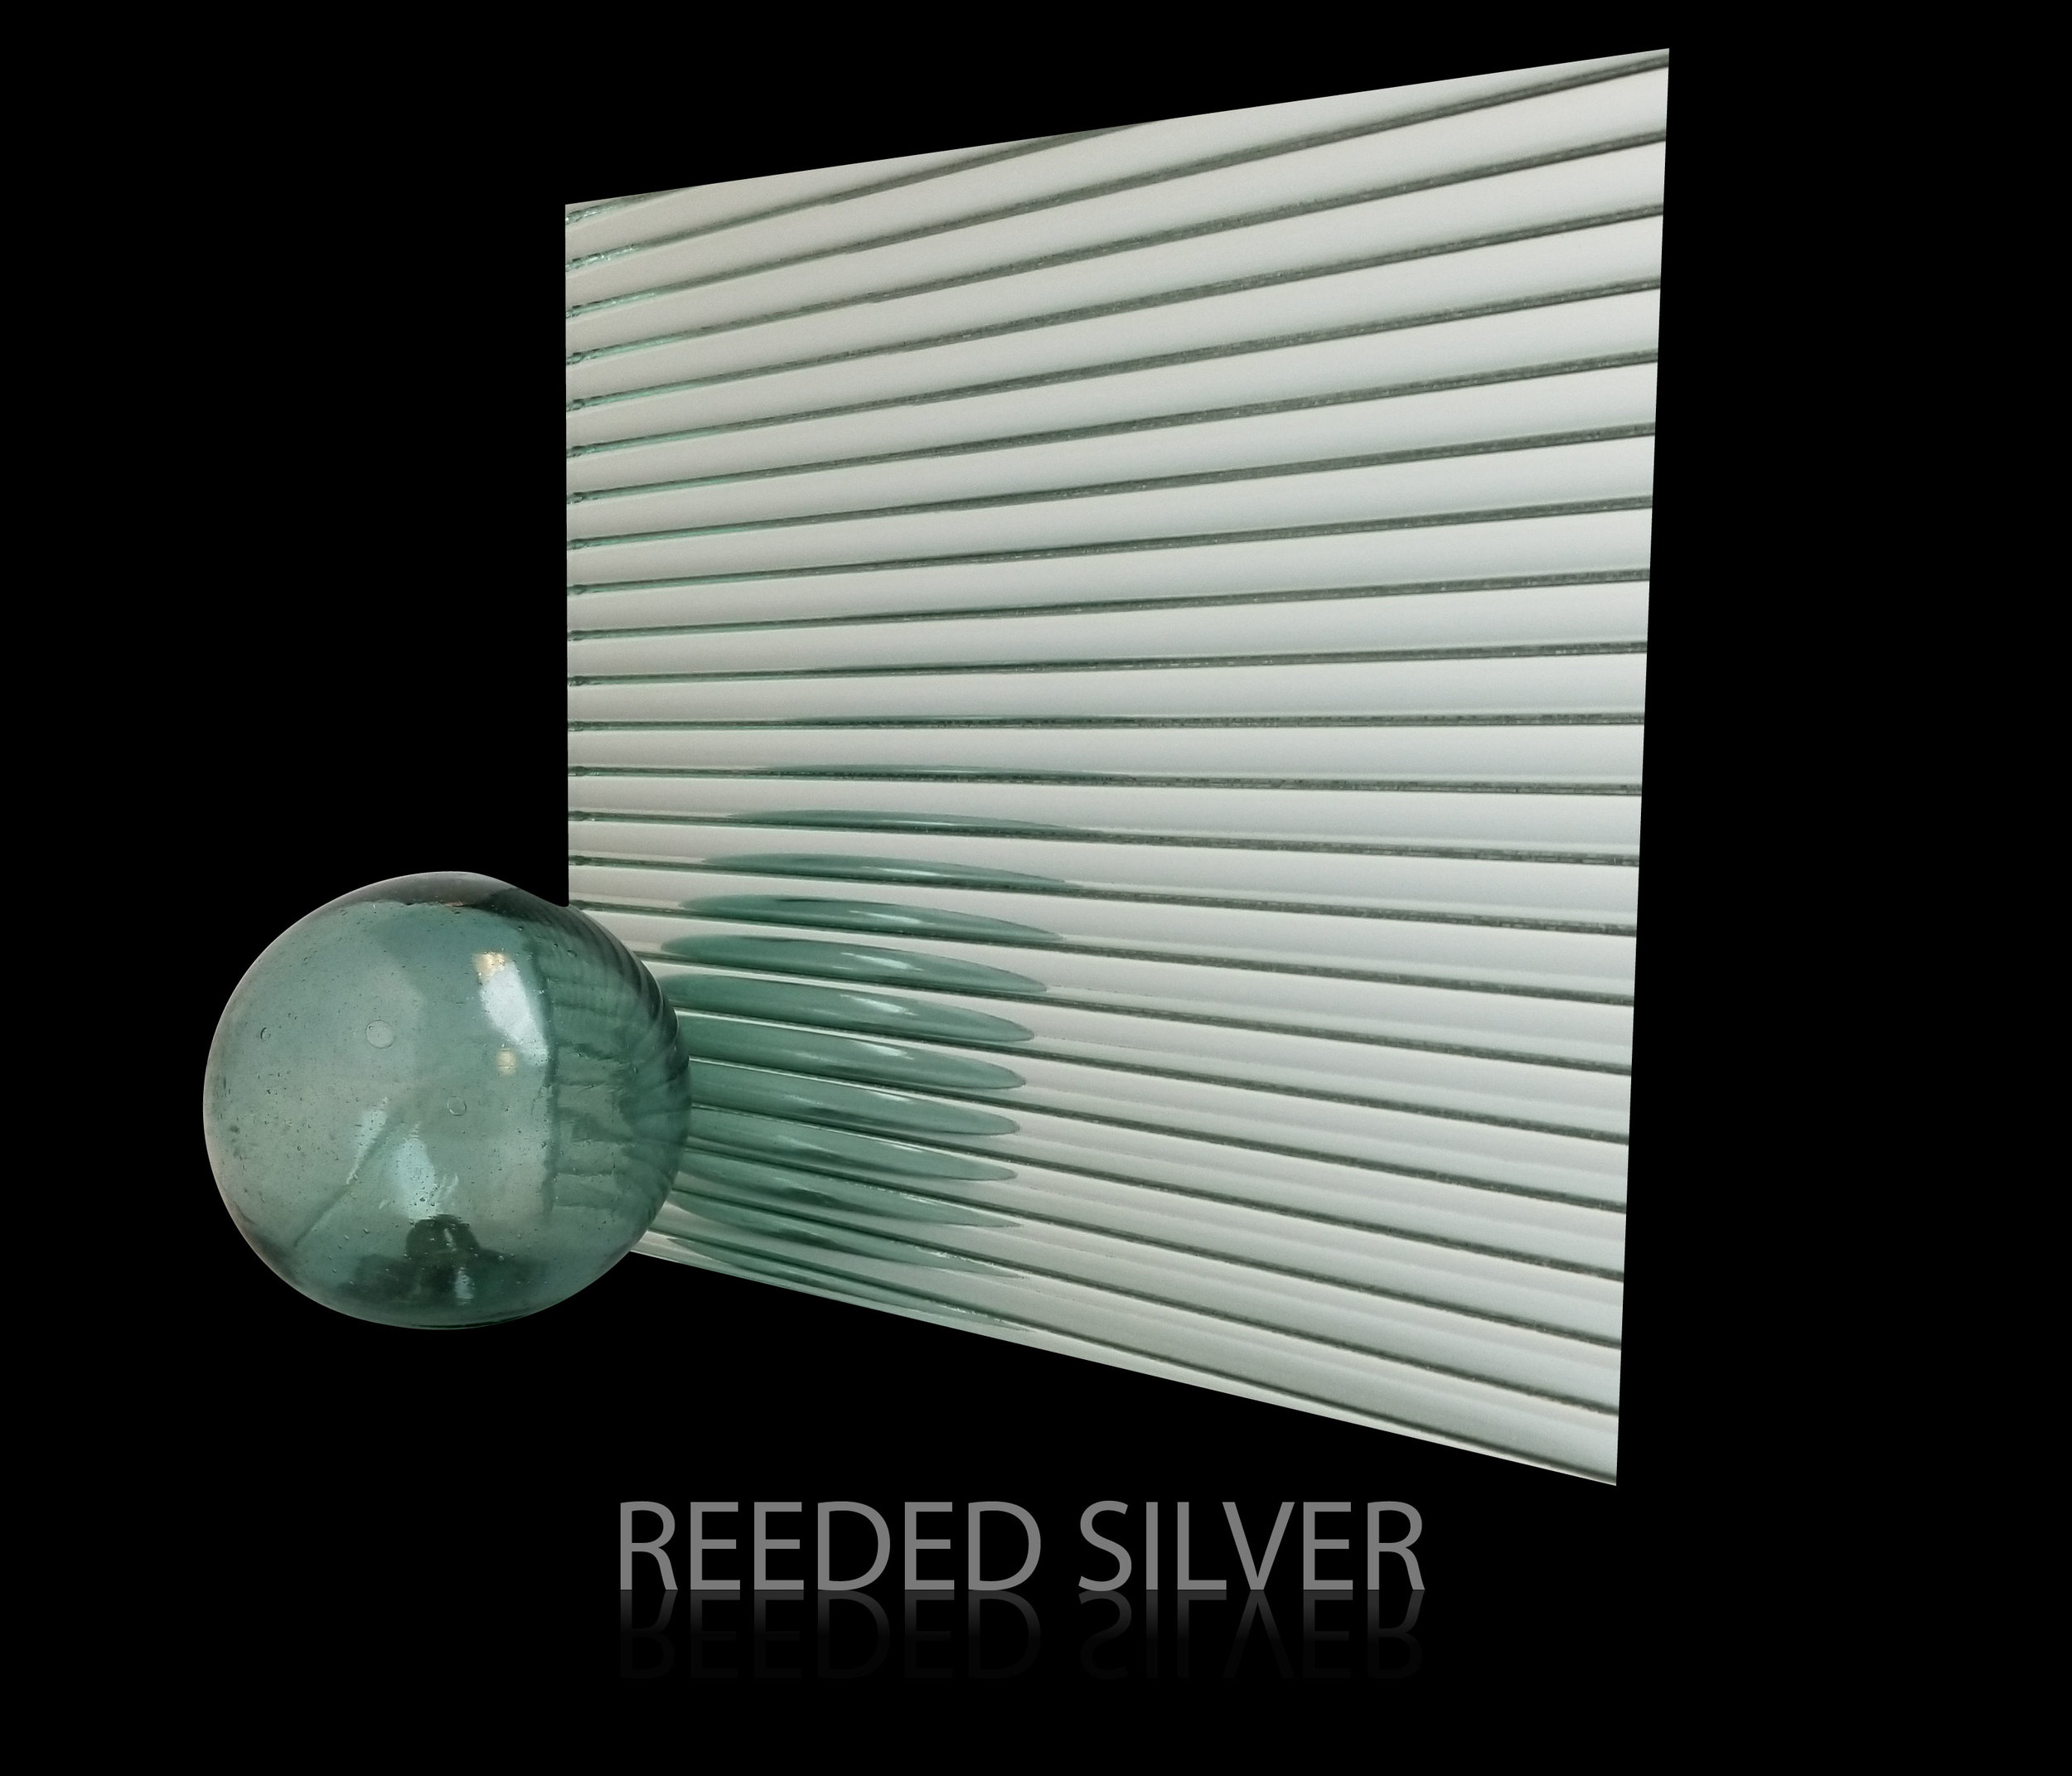 Reeded Silver (Horizontal).jpg